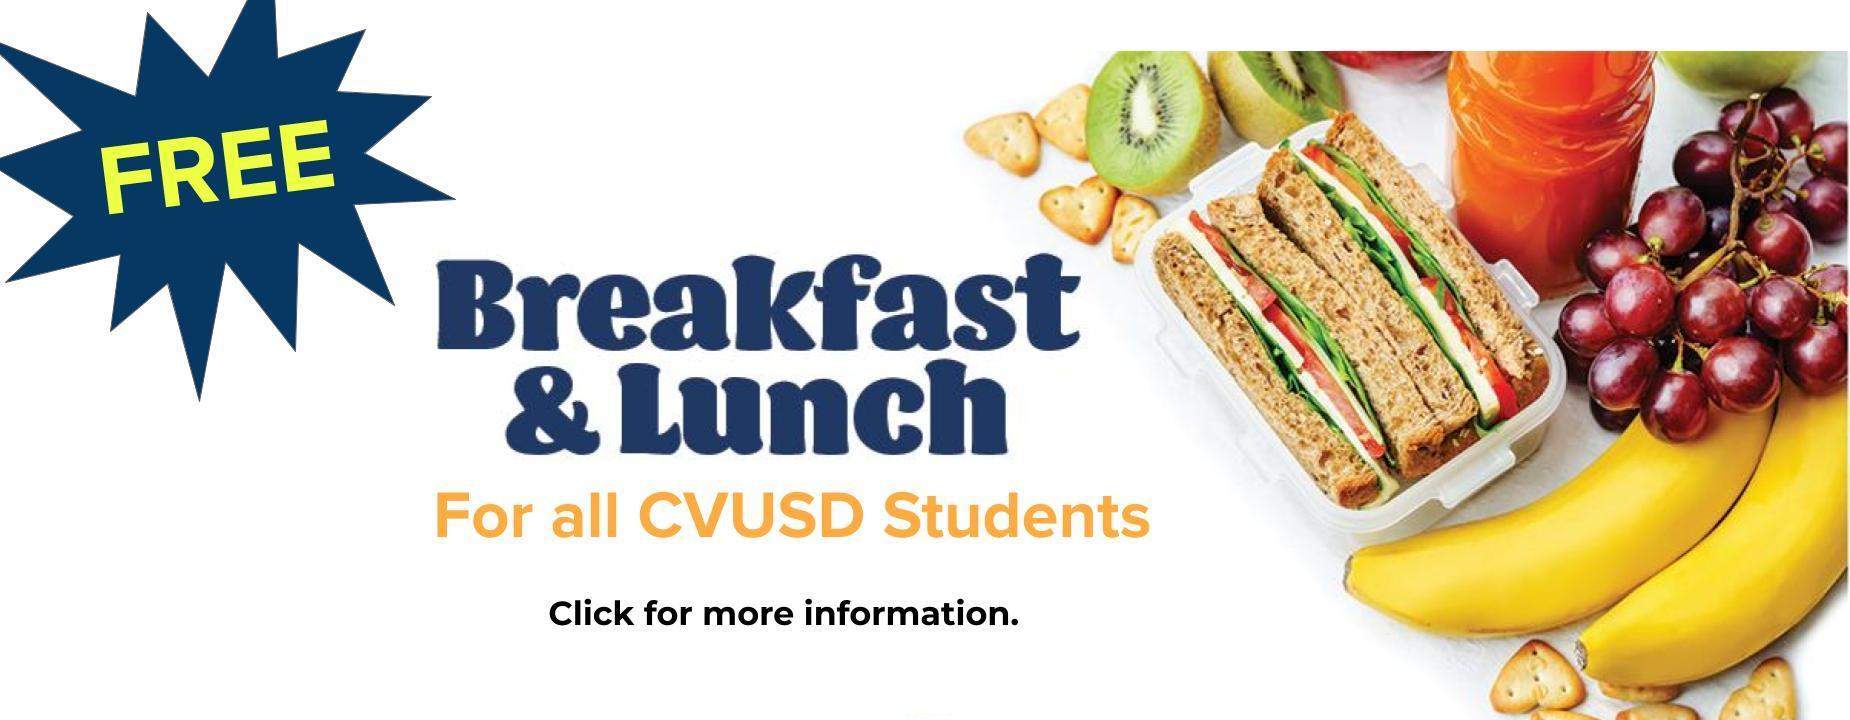 Free lunch for cvusd students 2021-2022